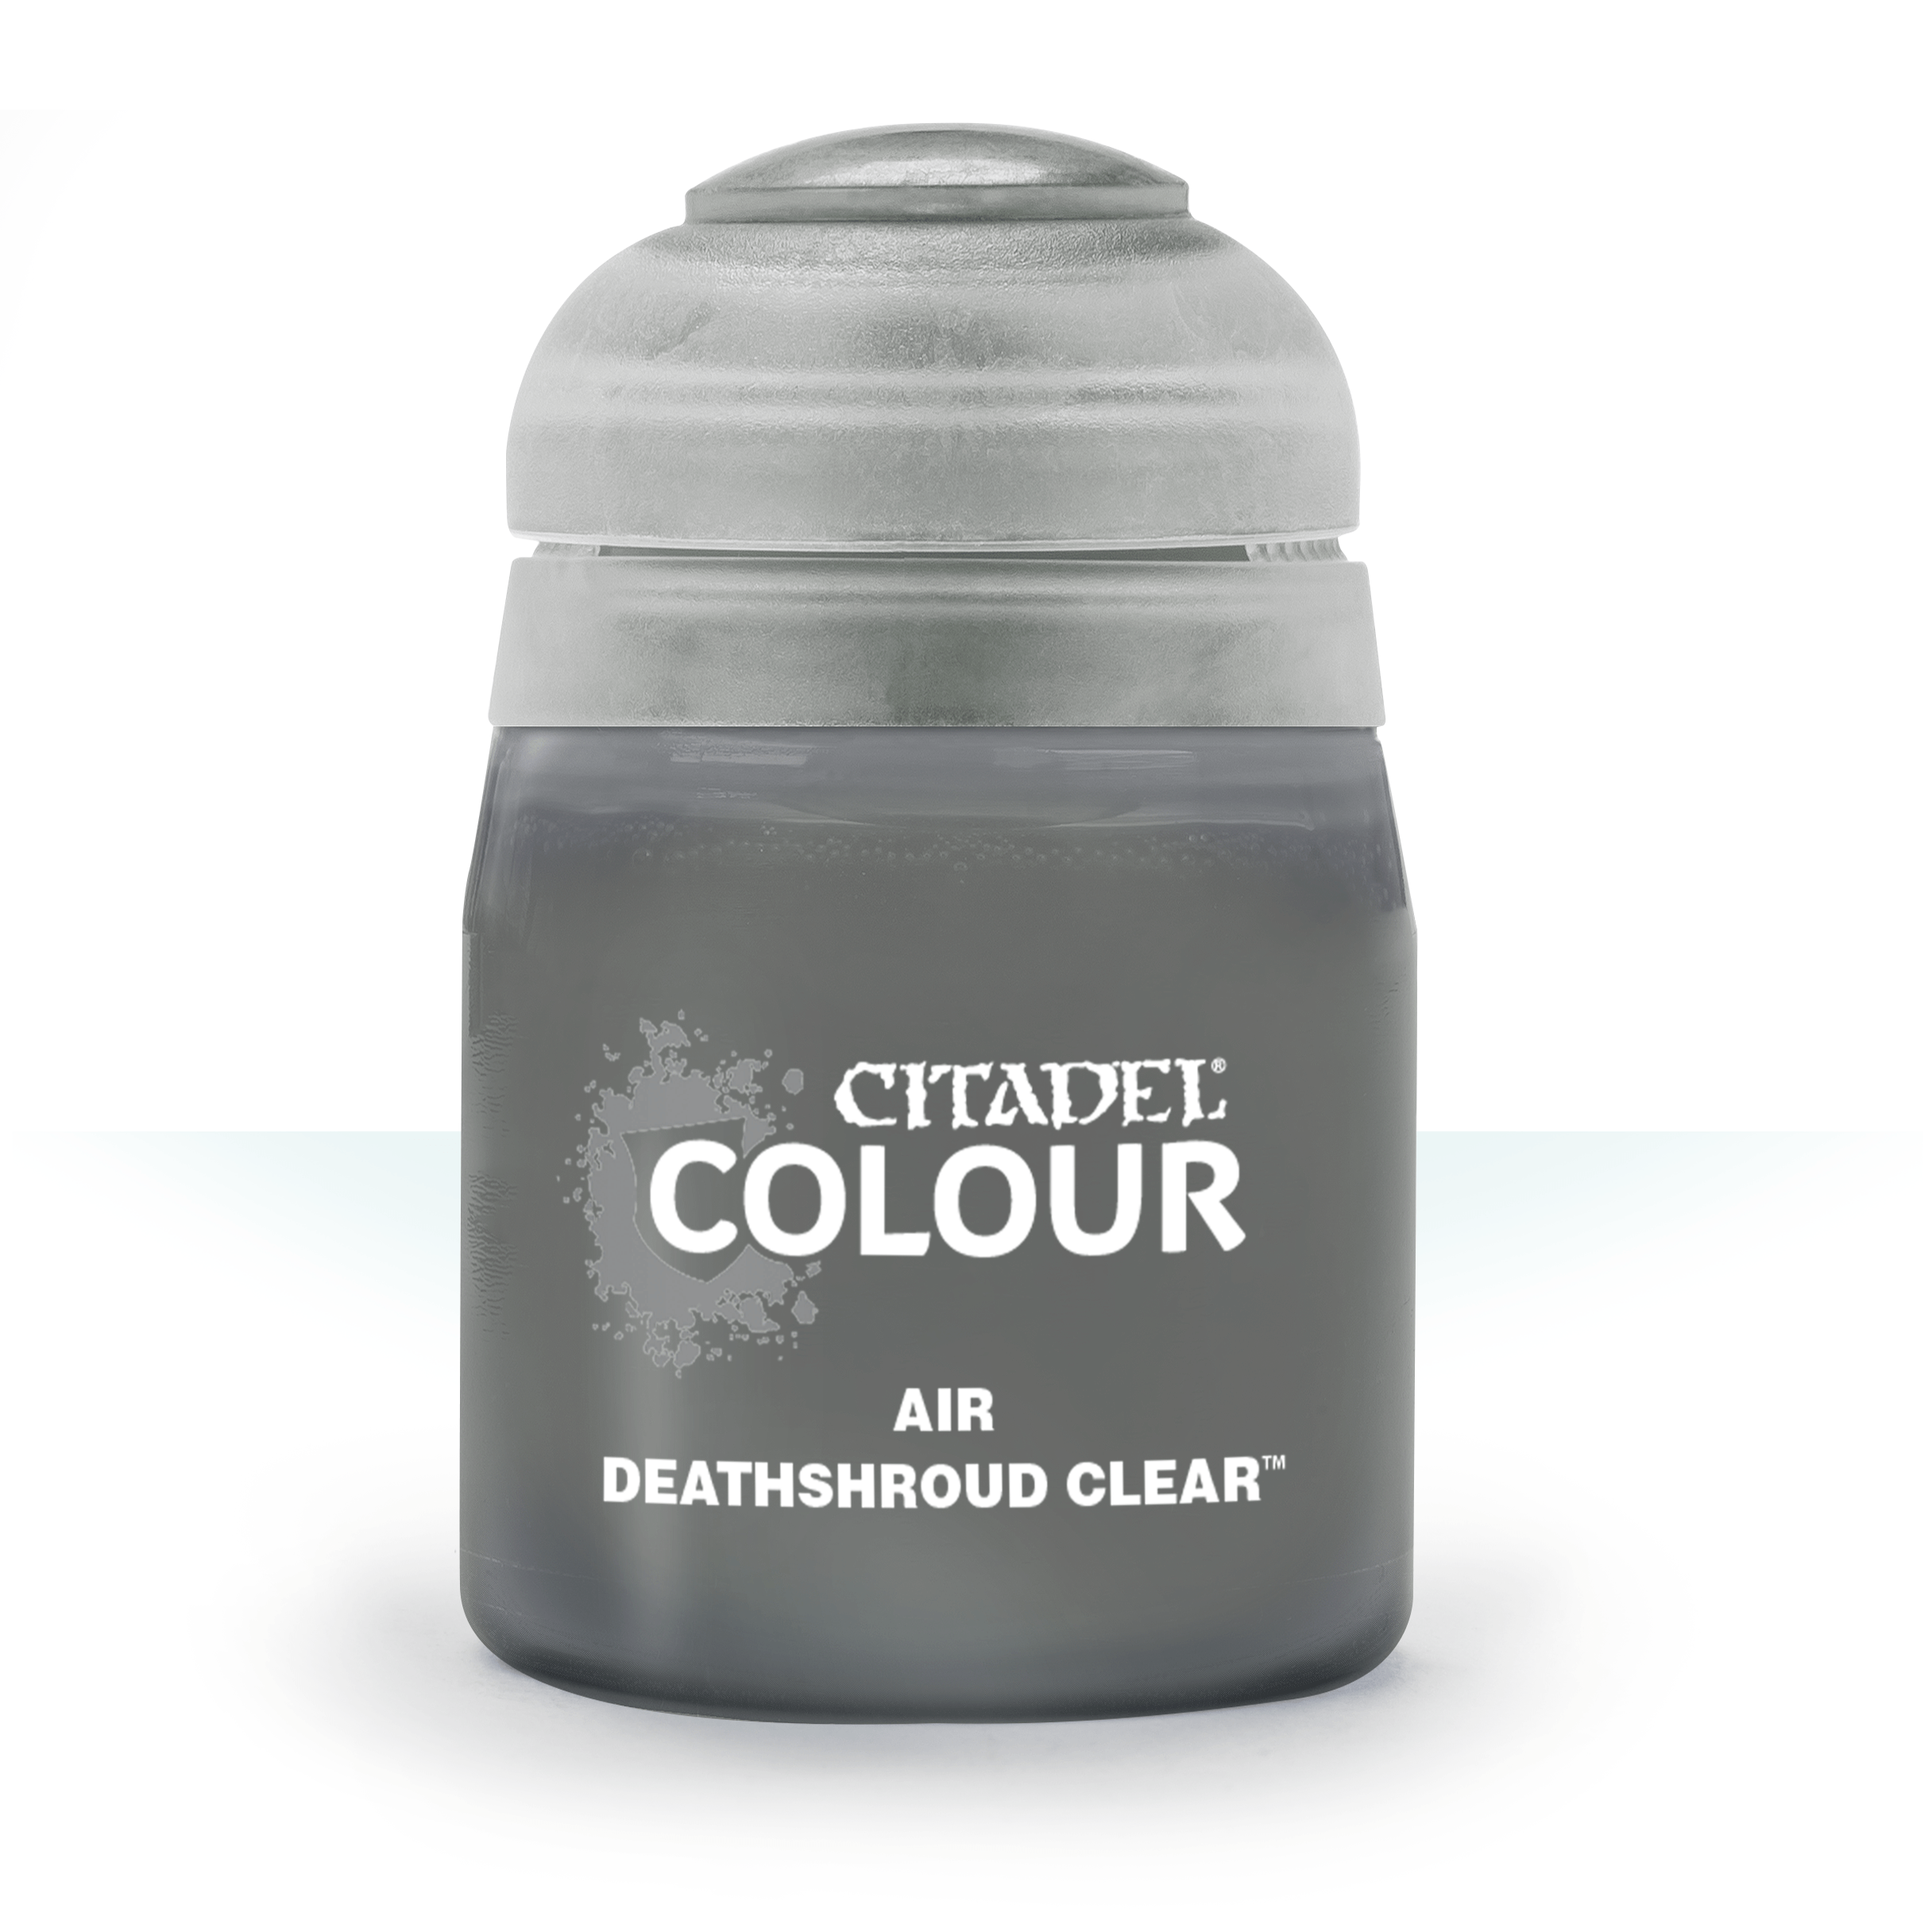 Citadel Airbrush Paints: Deathshroud Clear